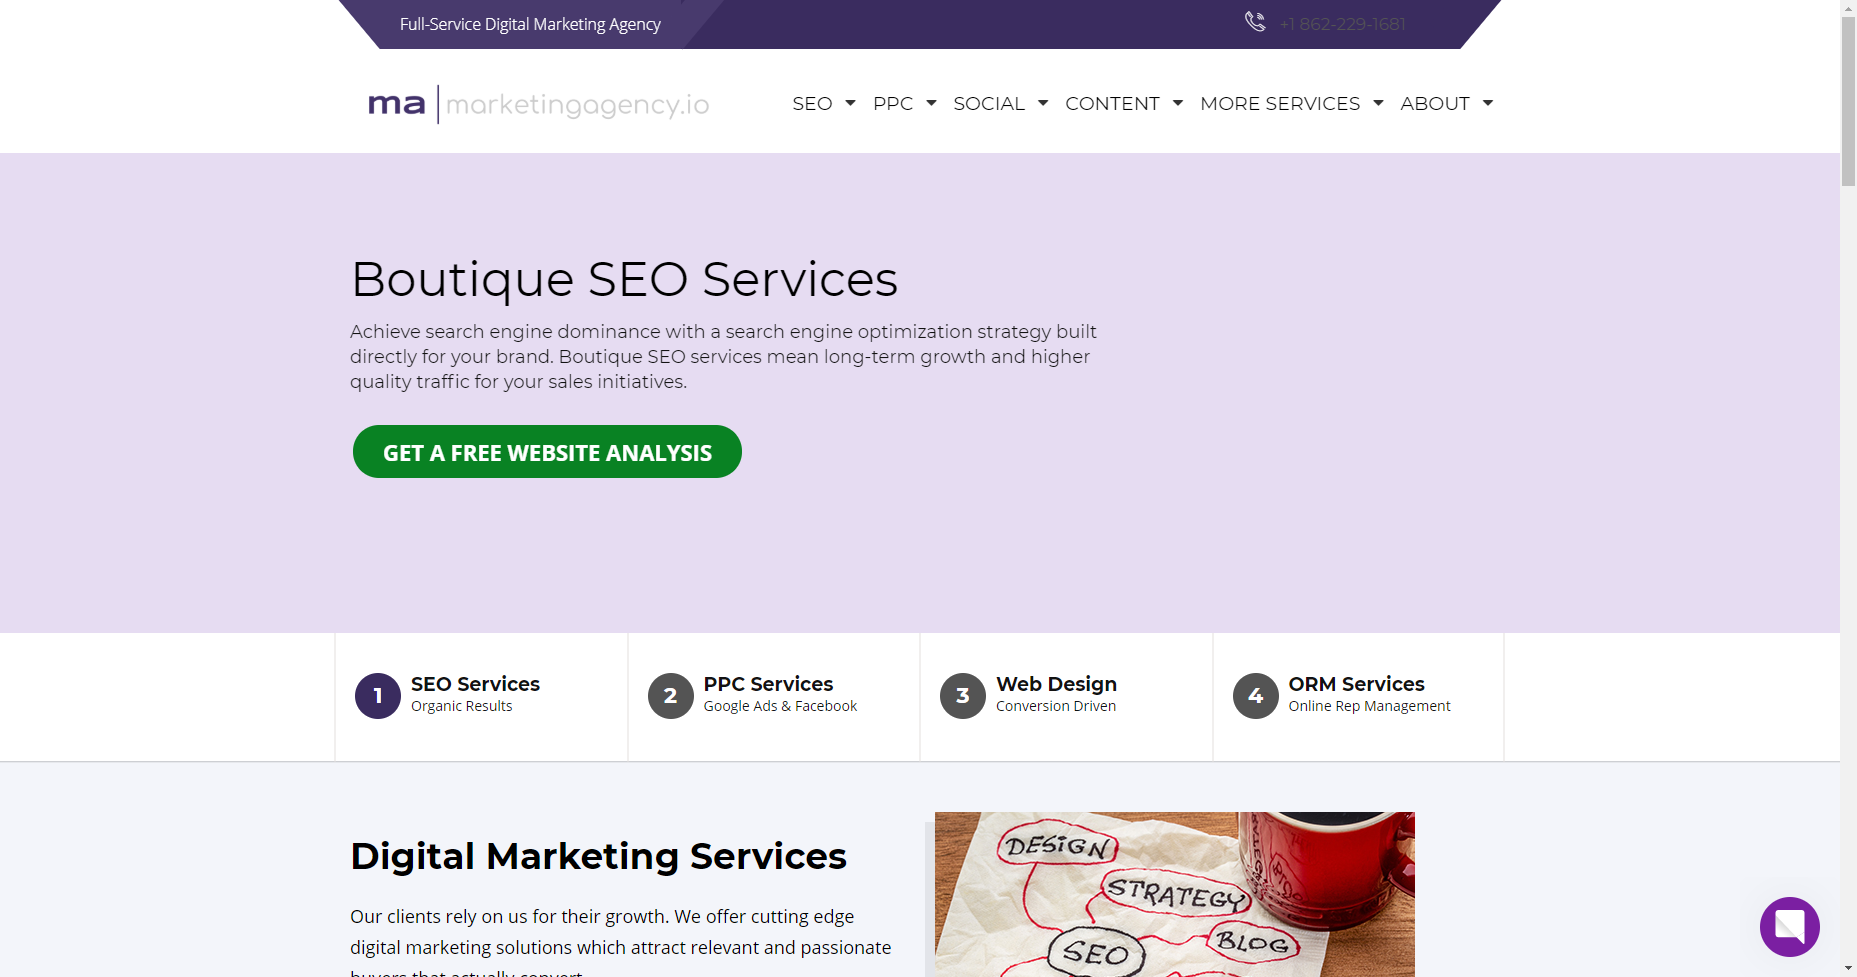 marketingagency.io best white label seo company